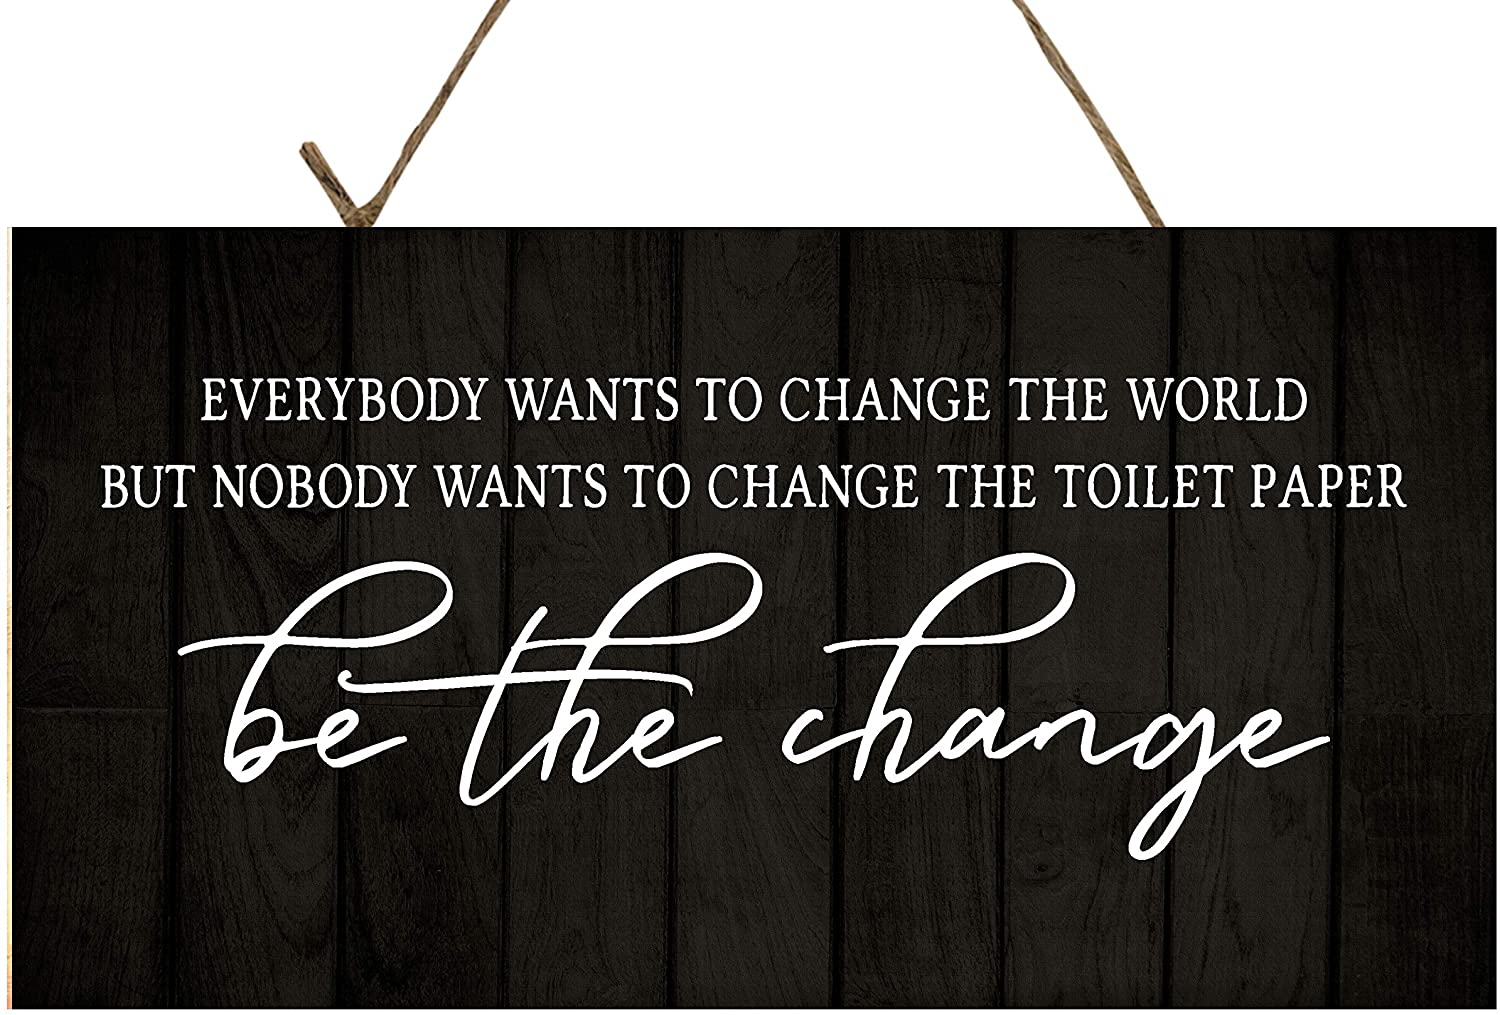 Twisted R Design Funny Bathroom Wall Sign (Be The Change)